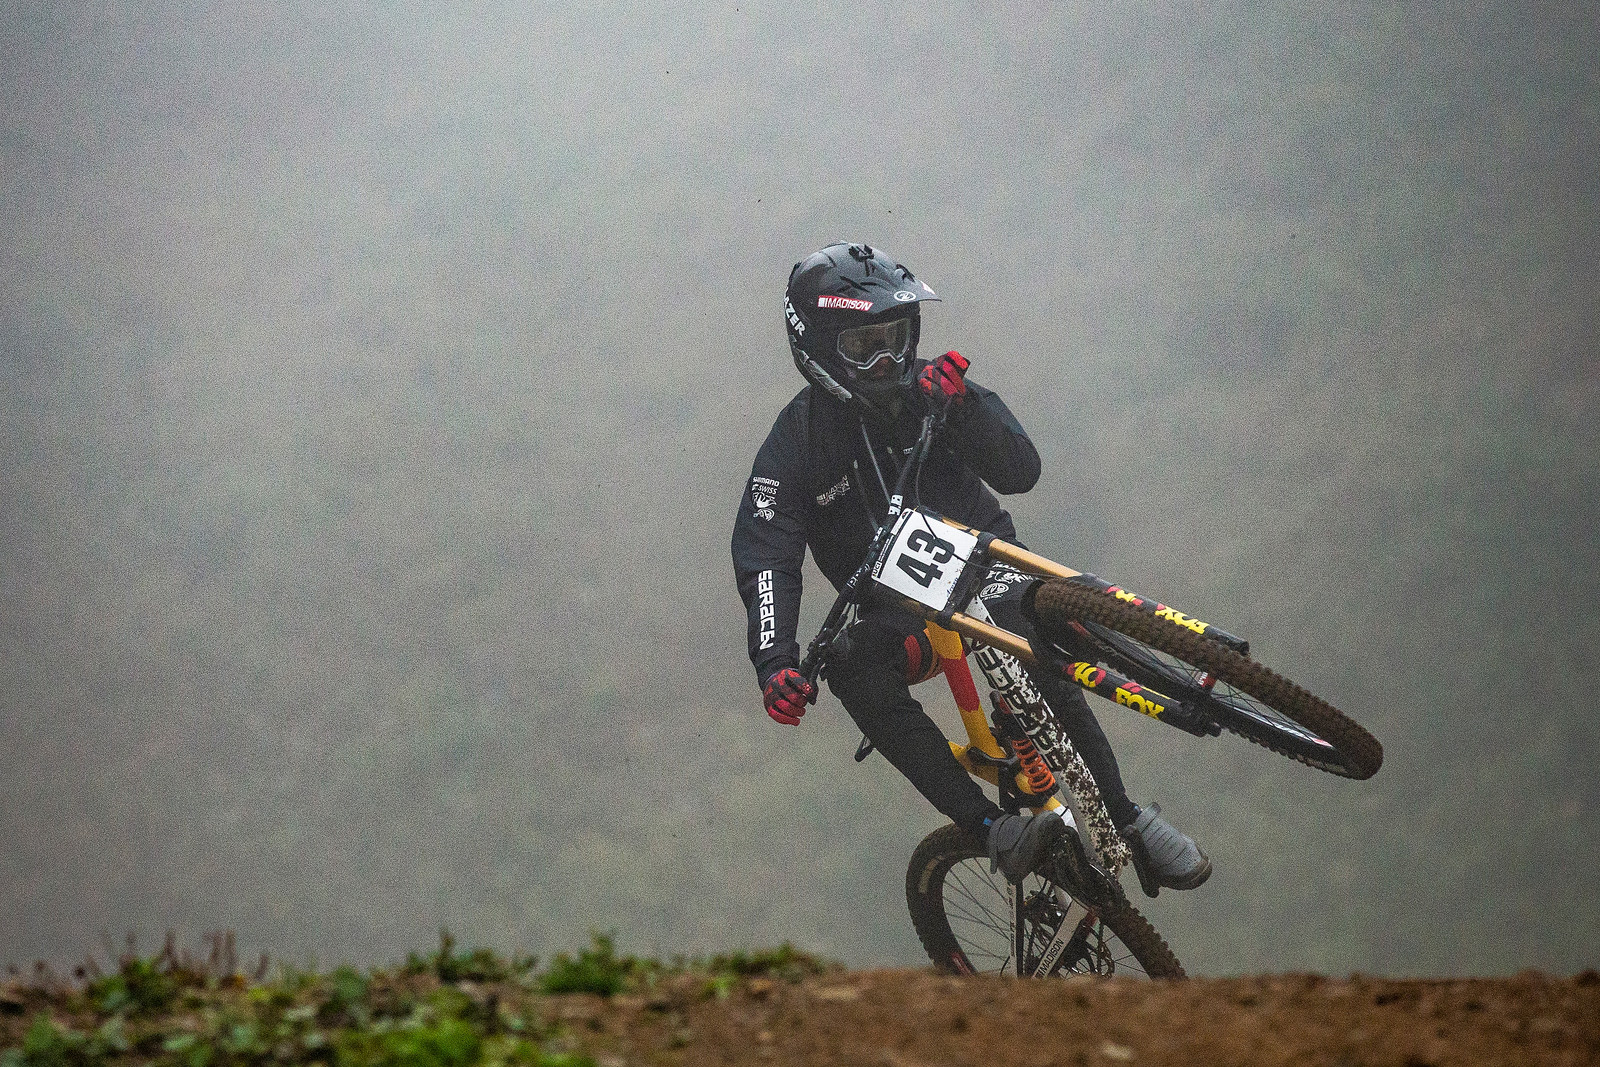 Alex Marin Distracted - WORLD CHAMPS WHIPFEST - Mountain Biking Pictures - Vital MTB